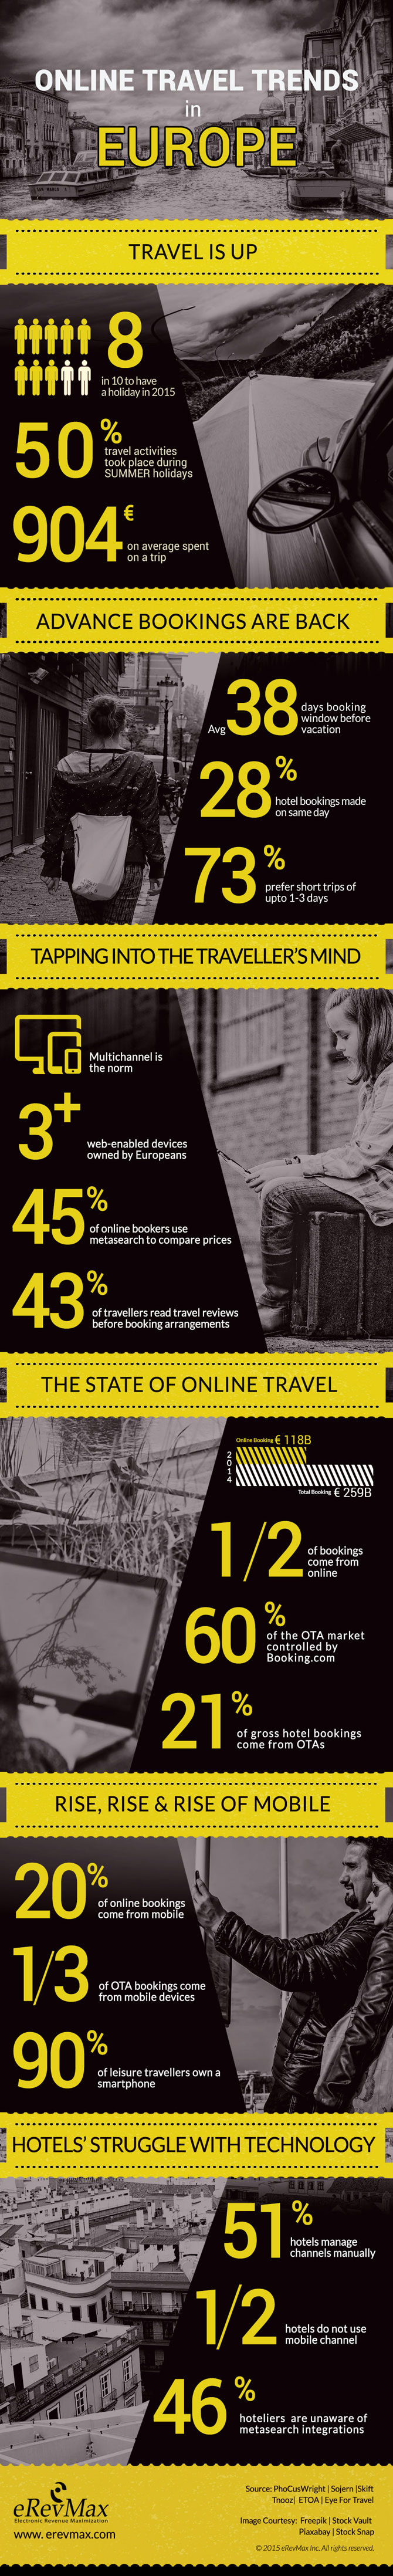 Infographic Travel Trends Europe